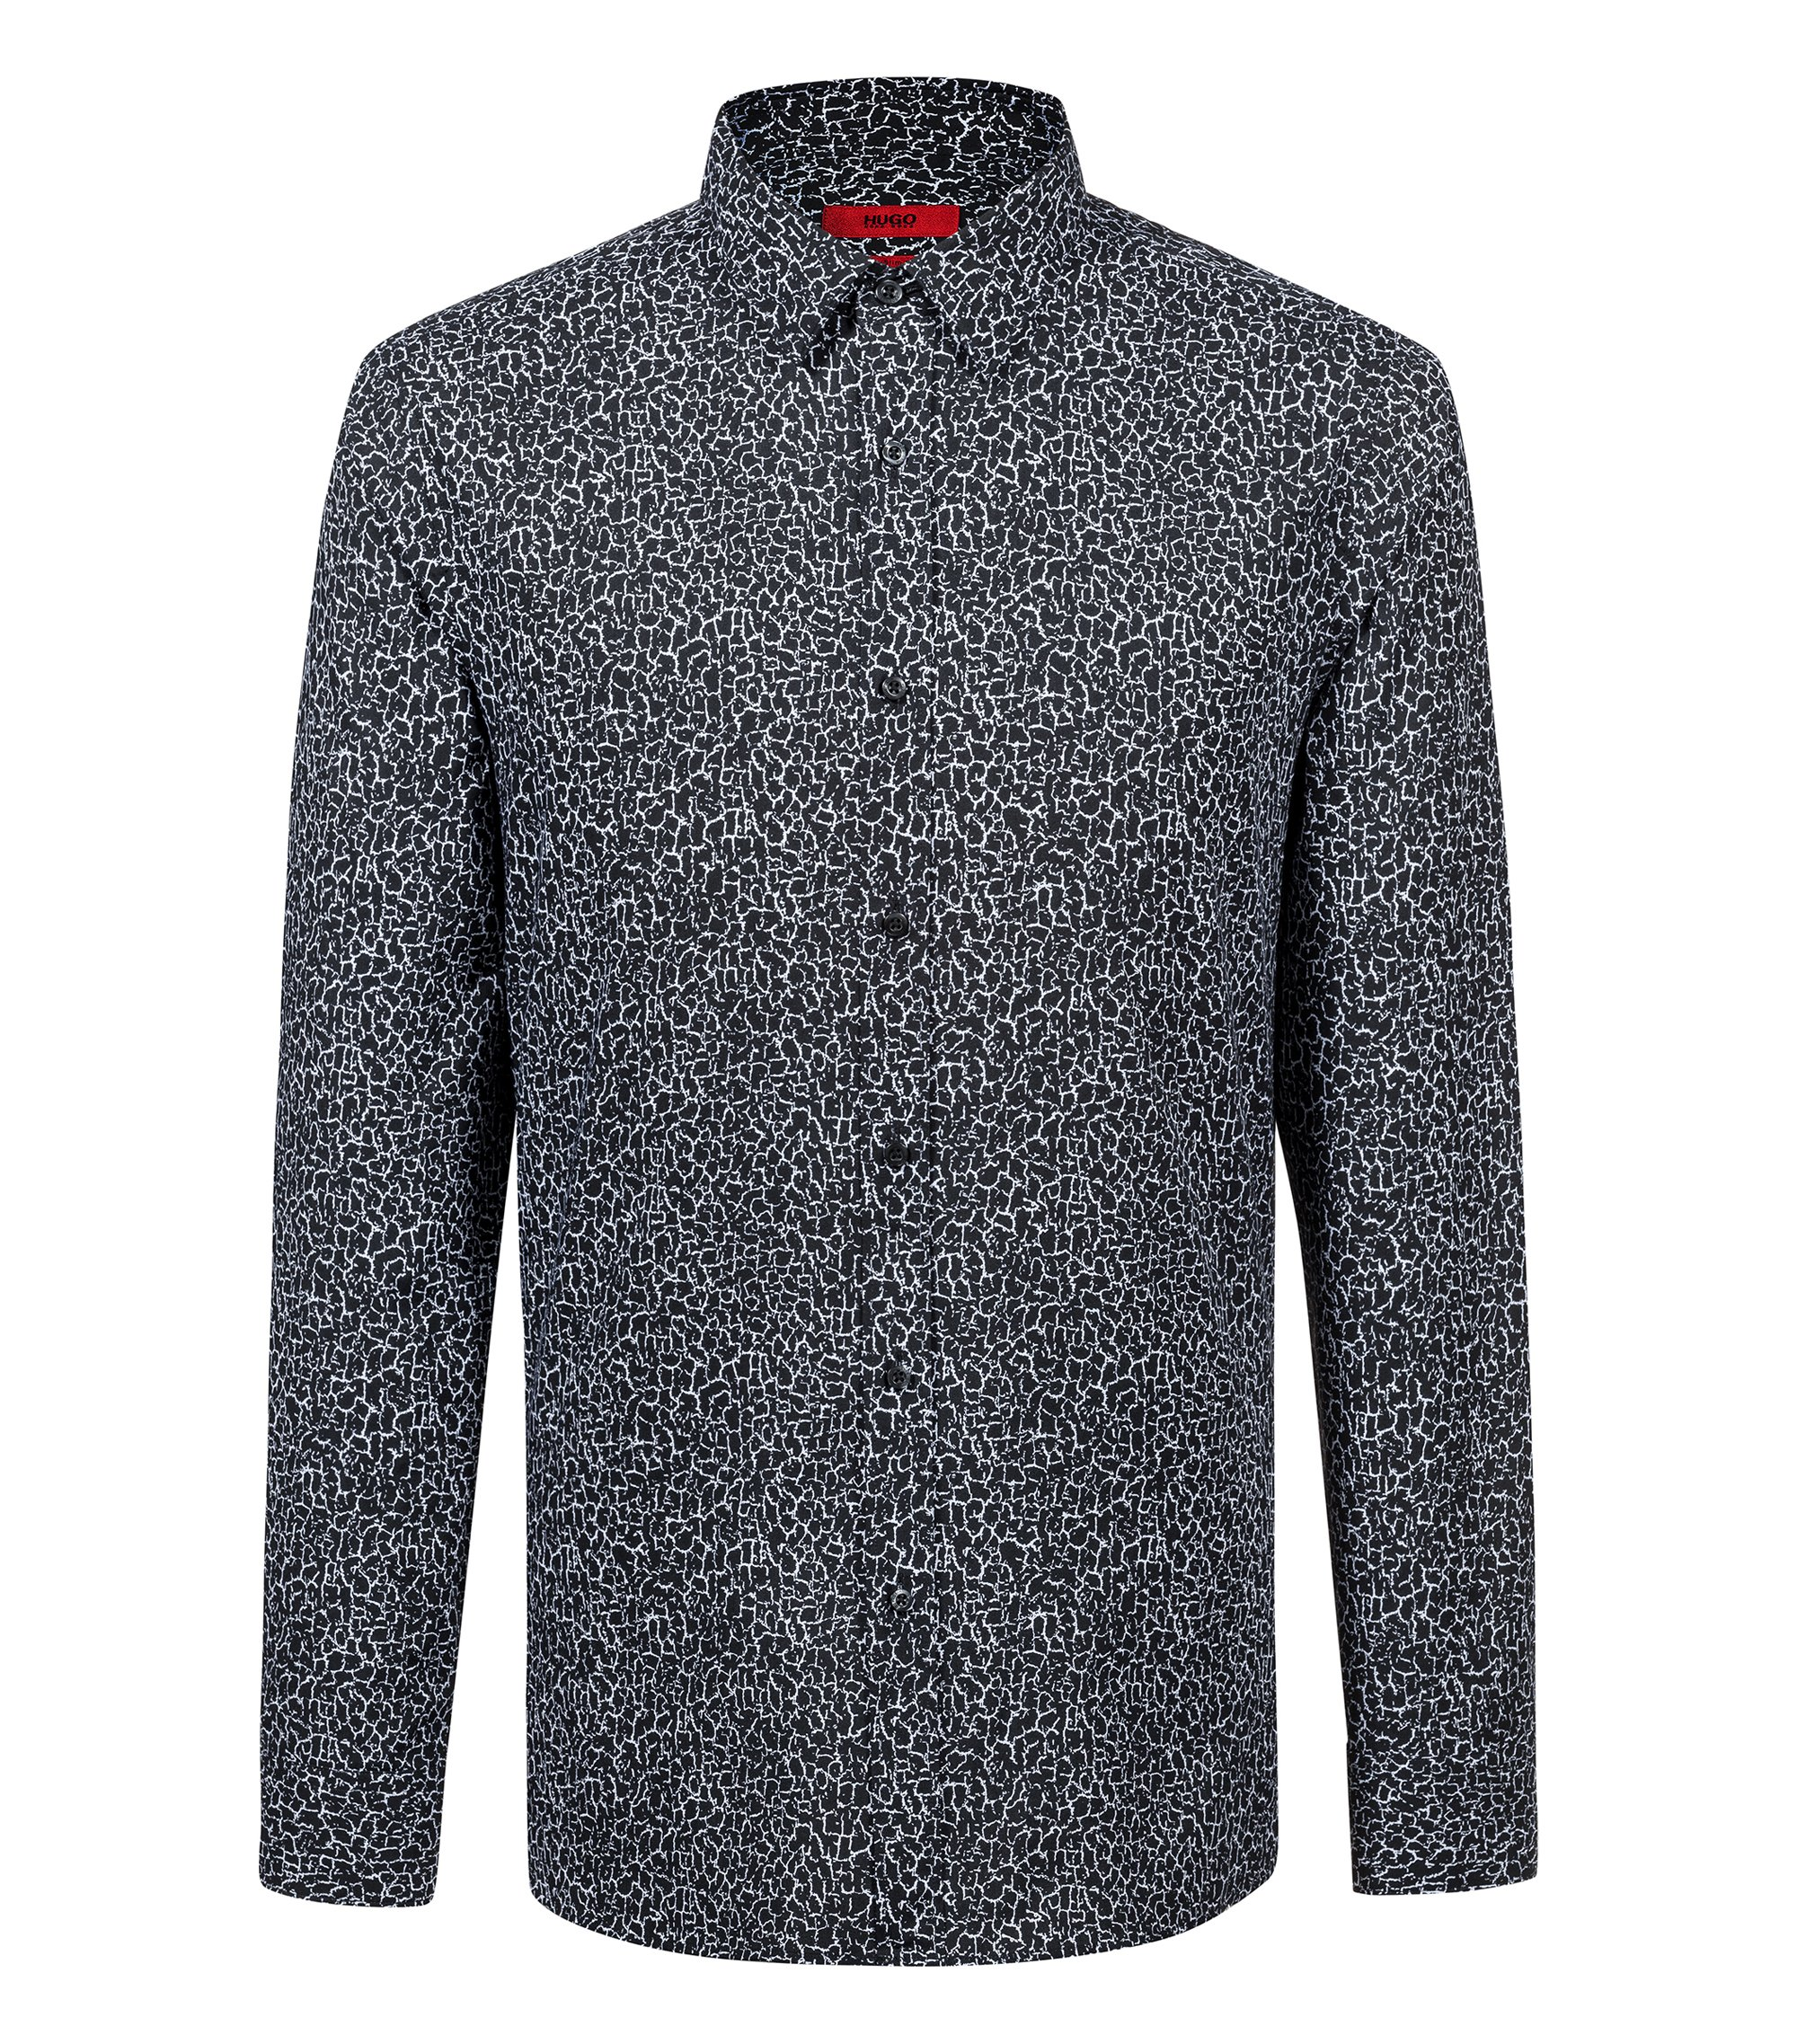 Extra-slim-fit cotton shirt with pigment-print pattern, Black